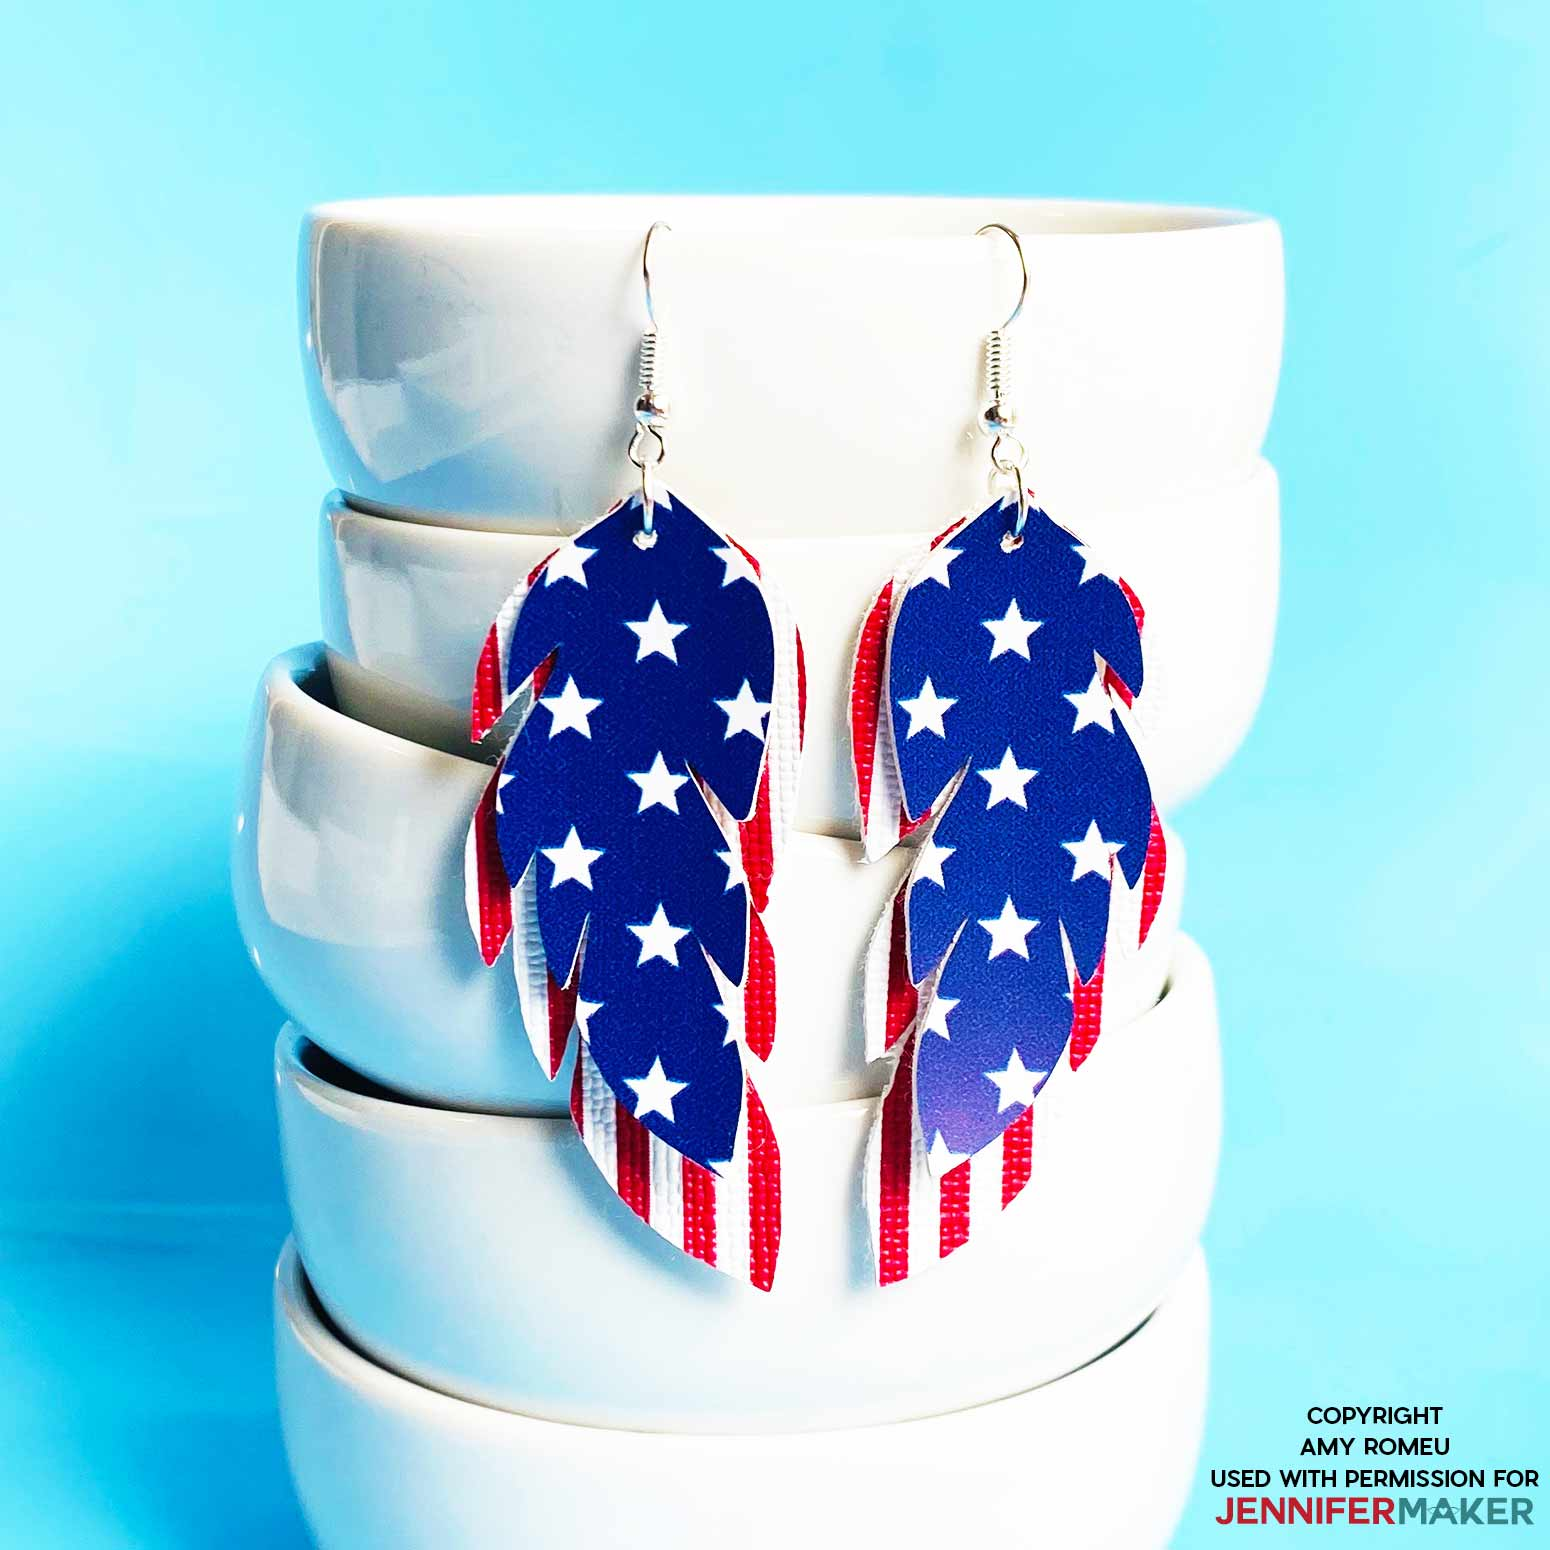 faux leather stars and stripe earrings by Amy Romeu